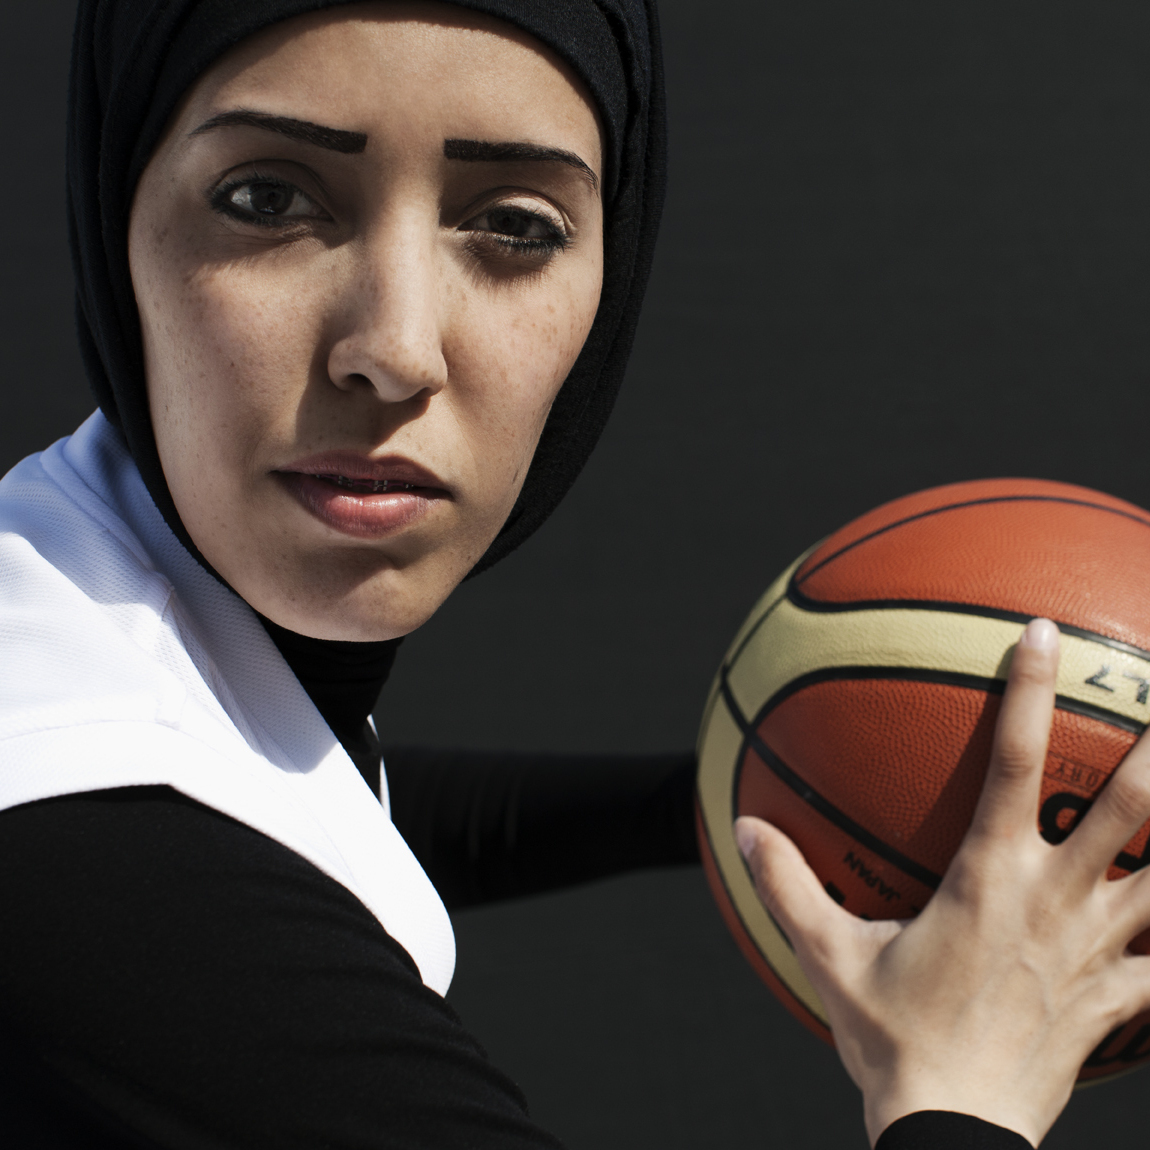 Qatari basketball player Amal Mohammad Awad